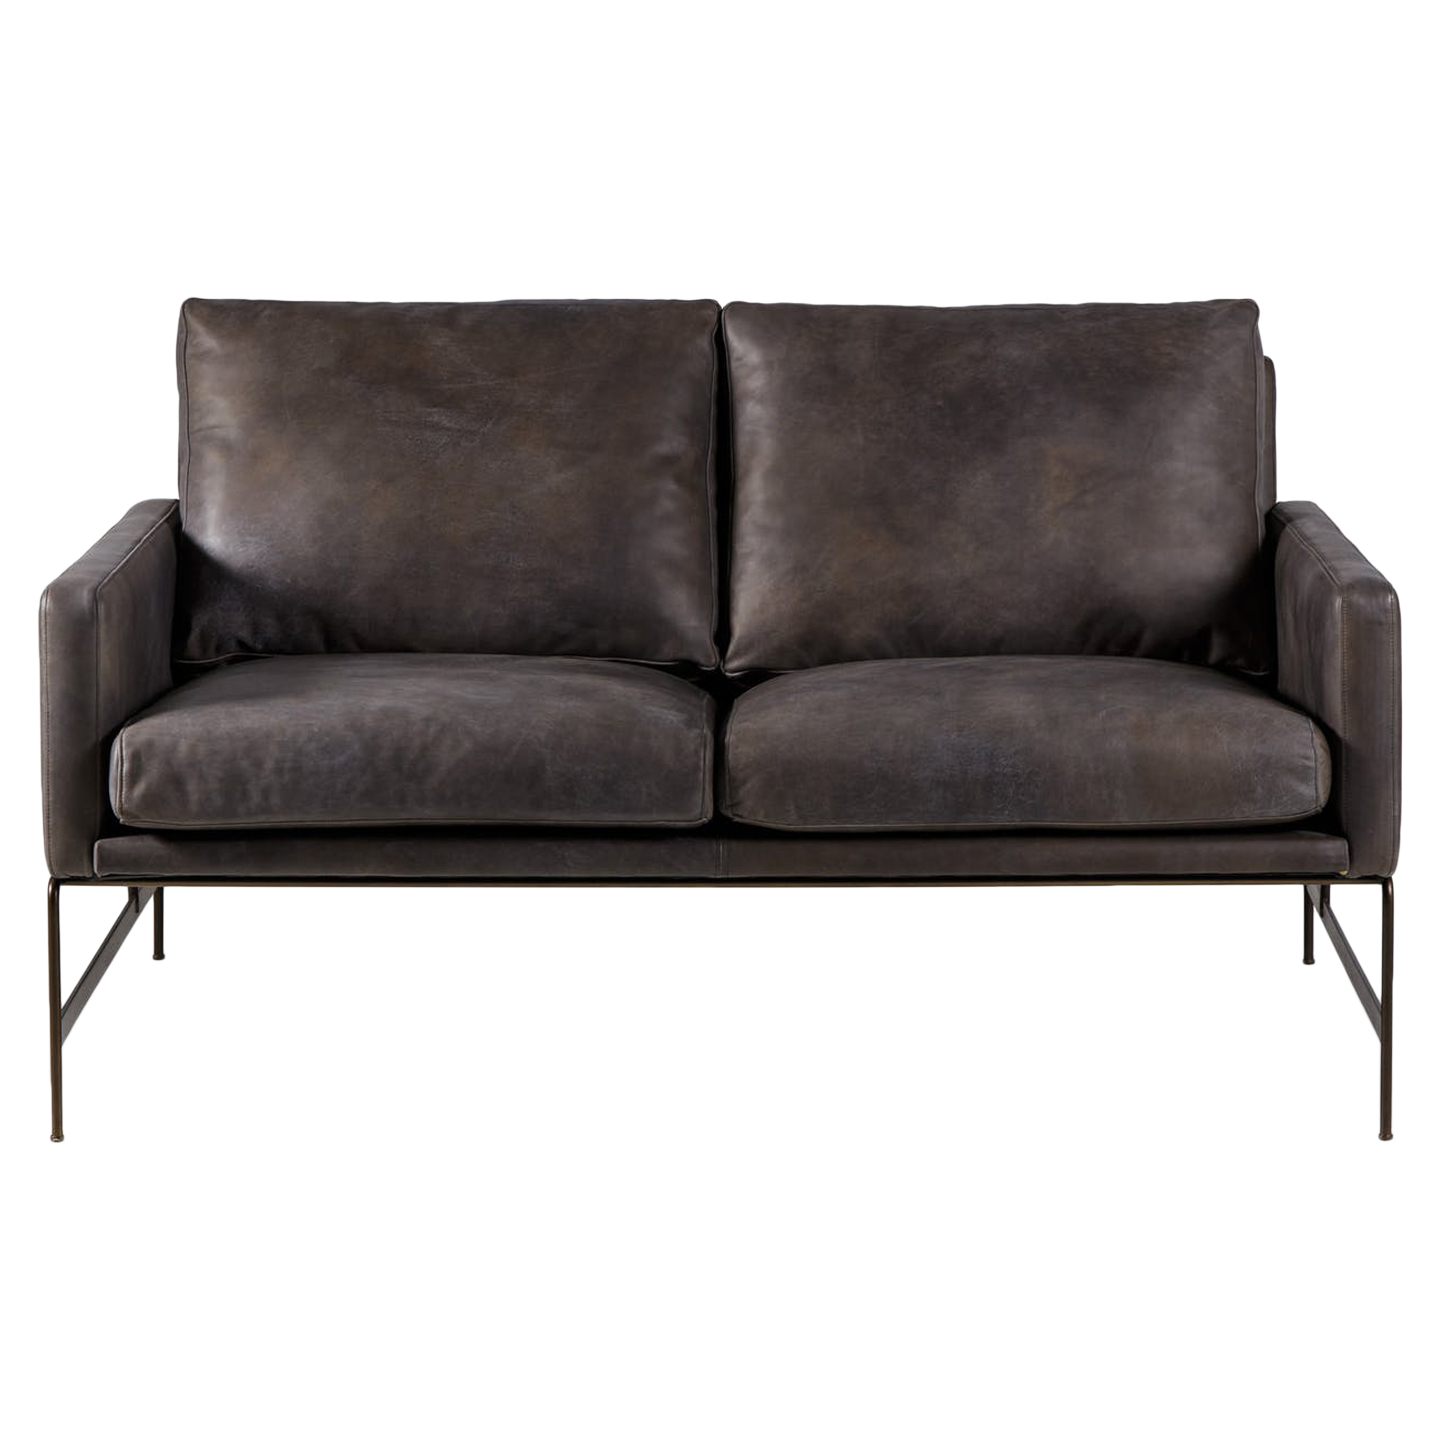 Vanessa 2 Seater Sofa - Destroyed Black Leather in 2019 ...